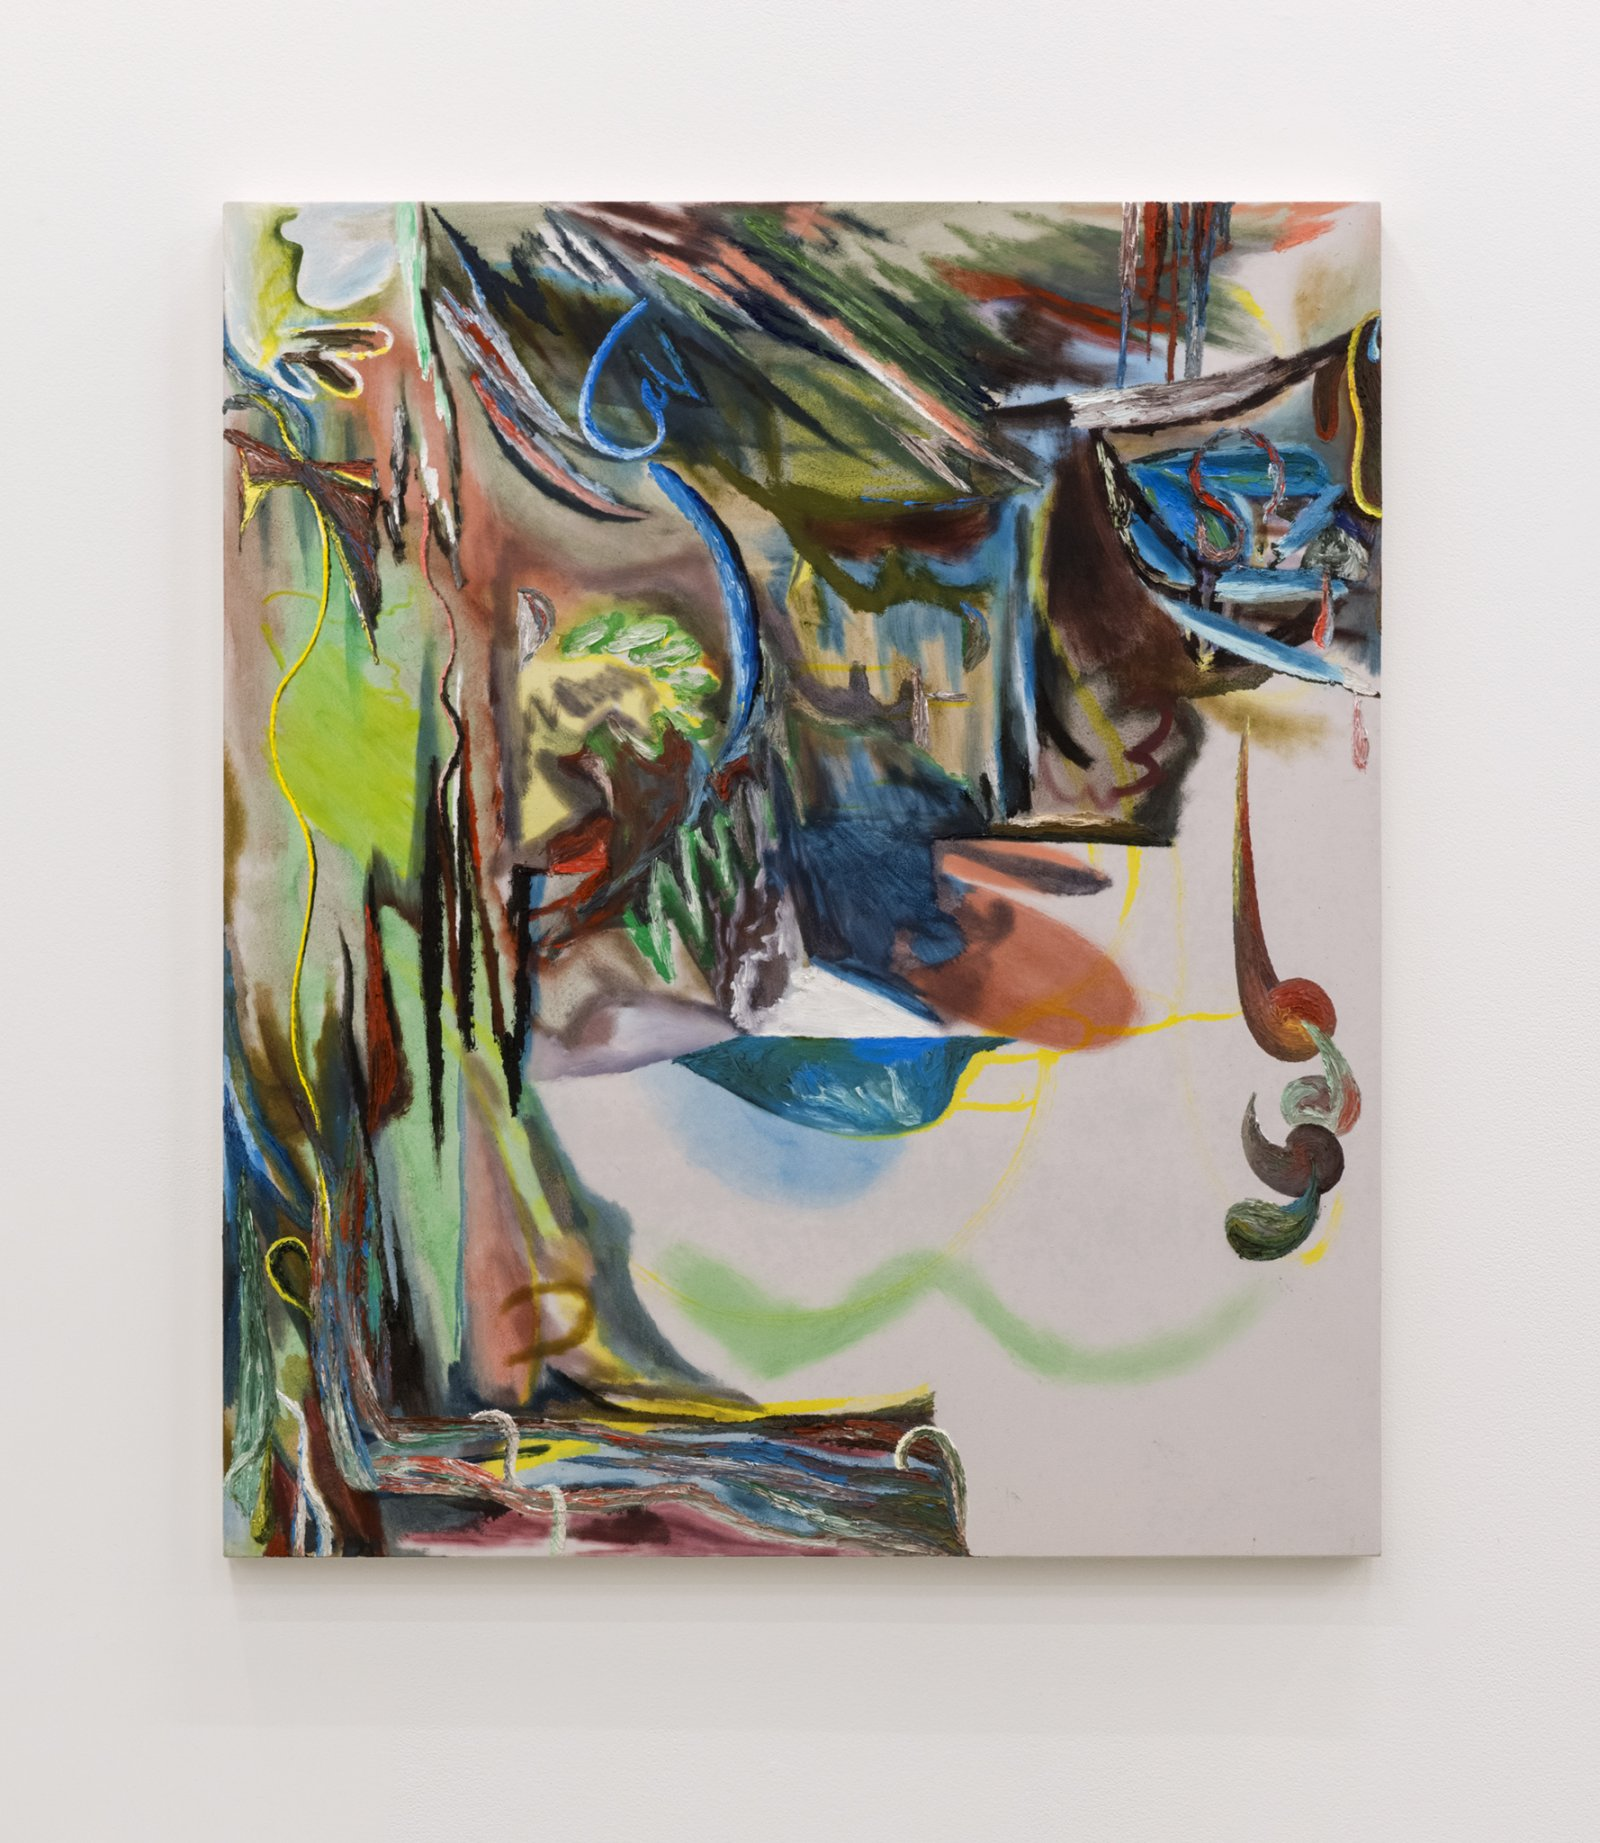 Rebecca Brewer, Smoke Show, 2016, oil on muslin on panel, 42 x 36 in. (107 x 92 cm)